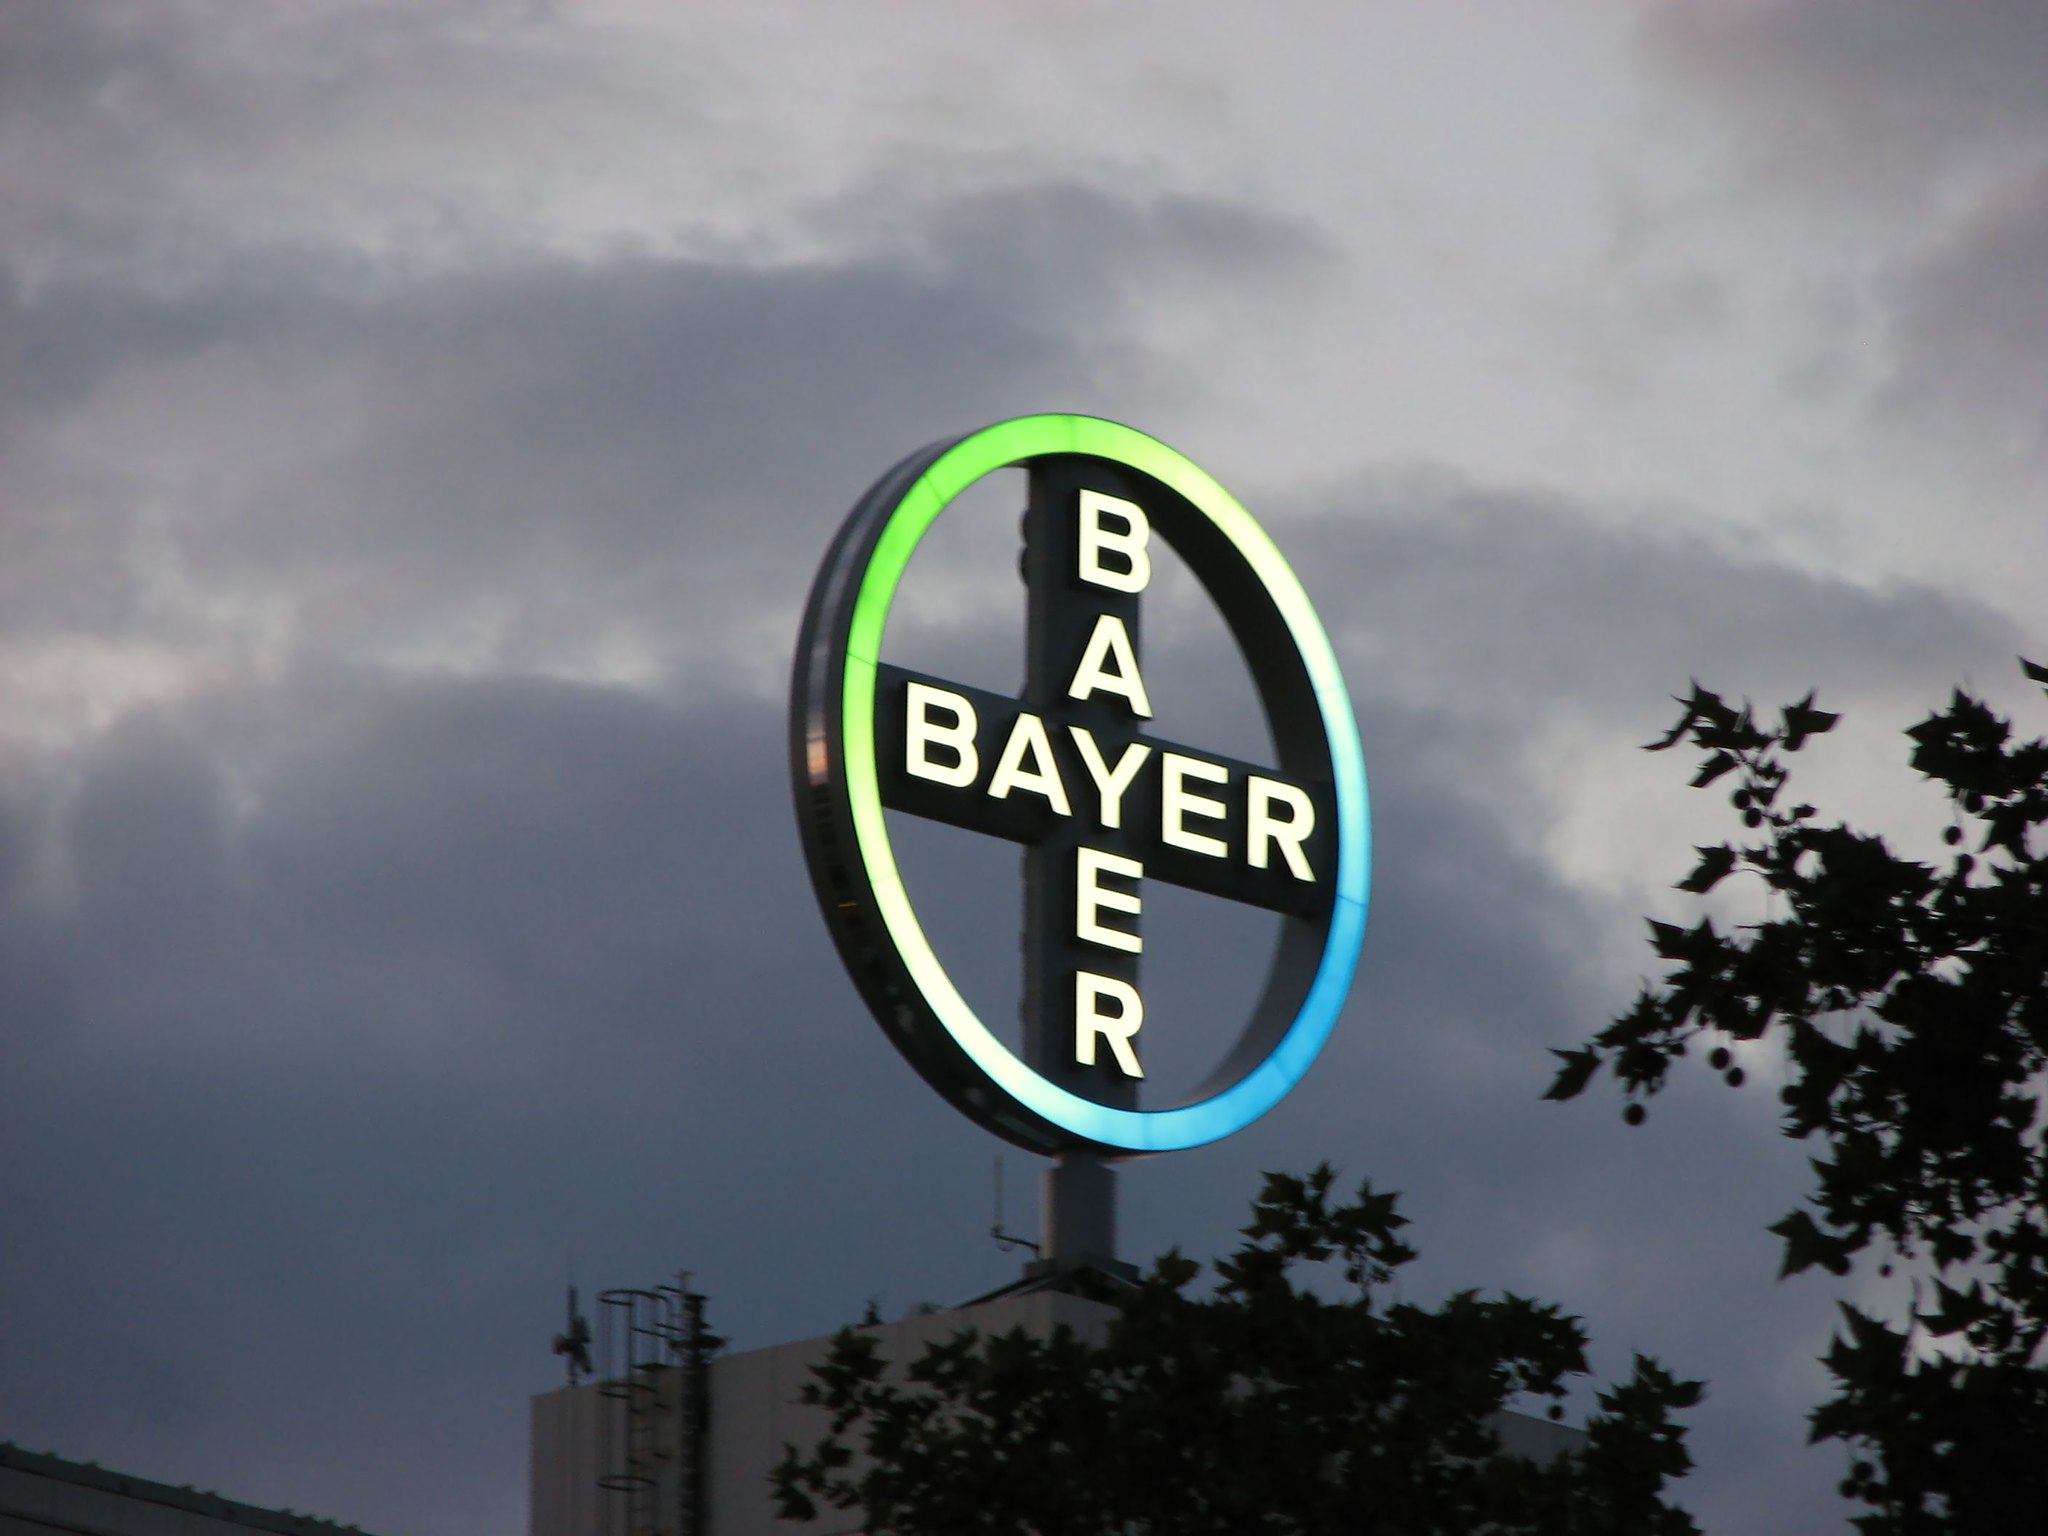 Grey storm clouds surrounding a Bayer logo sign.